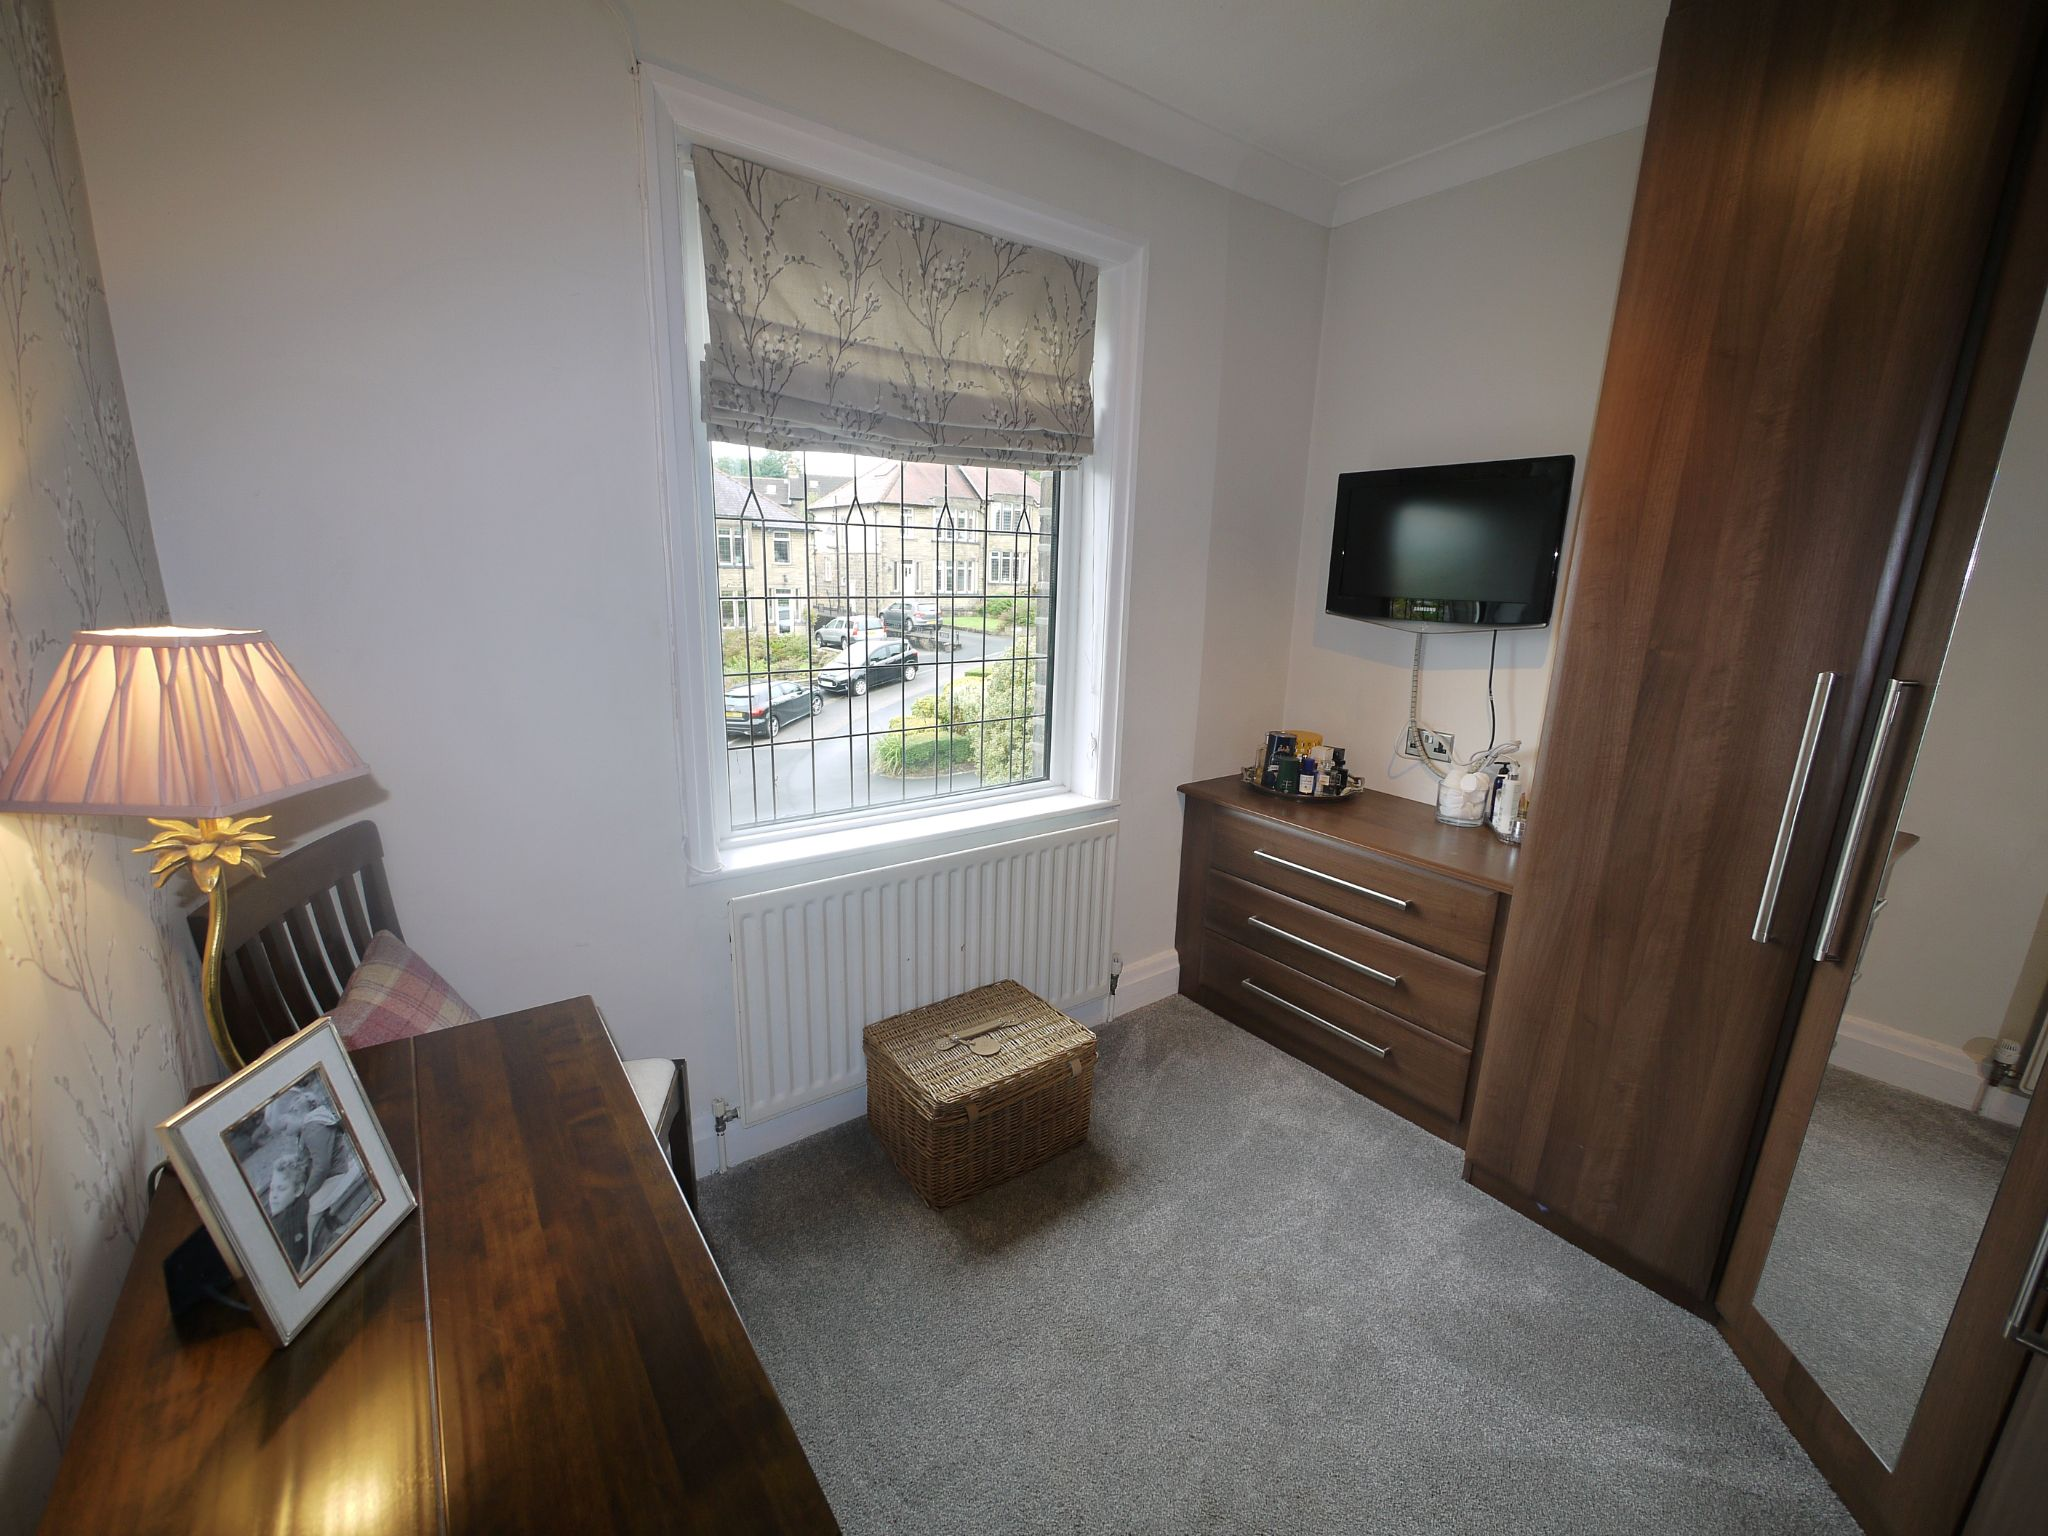 4 bedroom semi-detached house SSTC in Halifax - Bed 3.